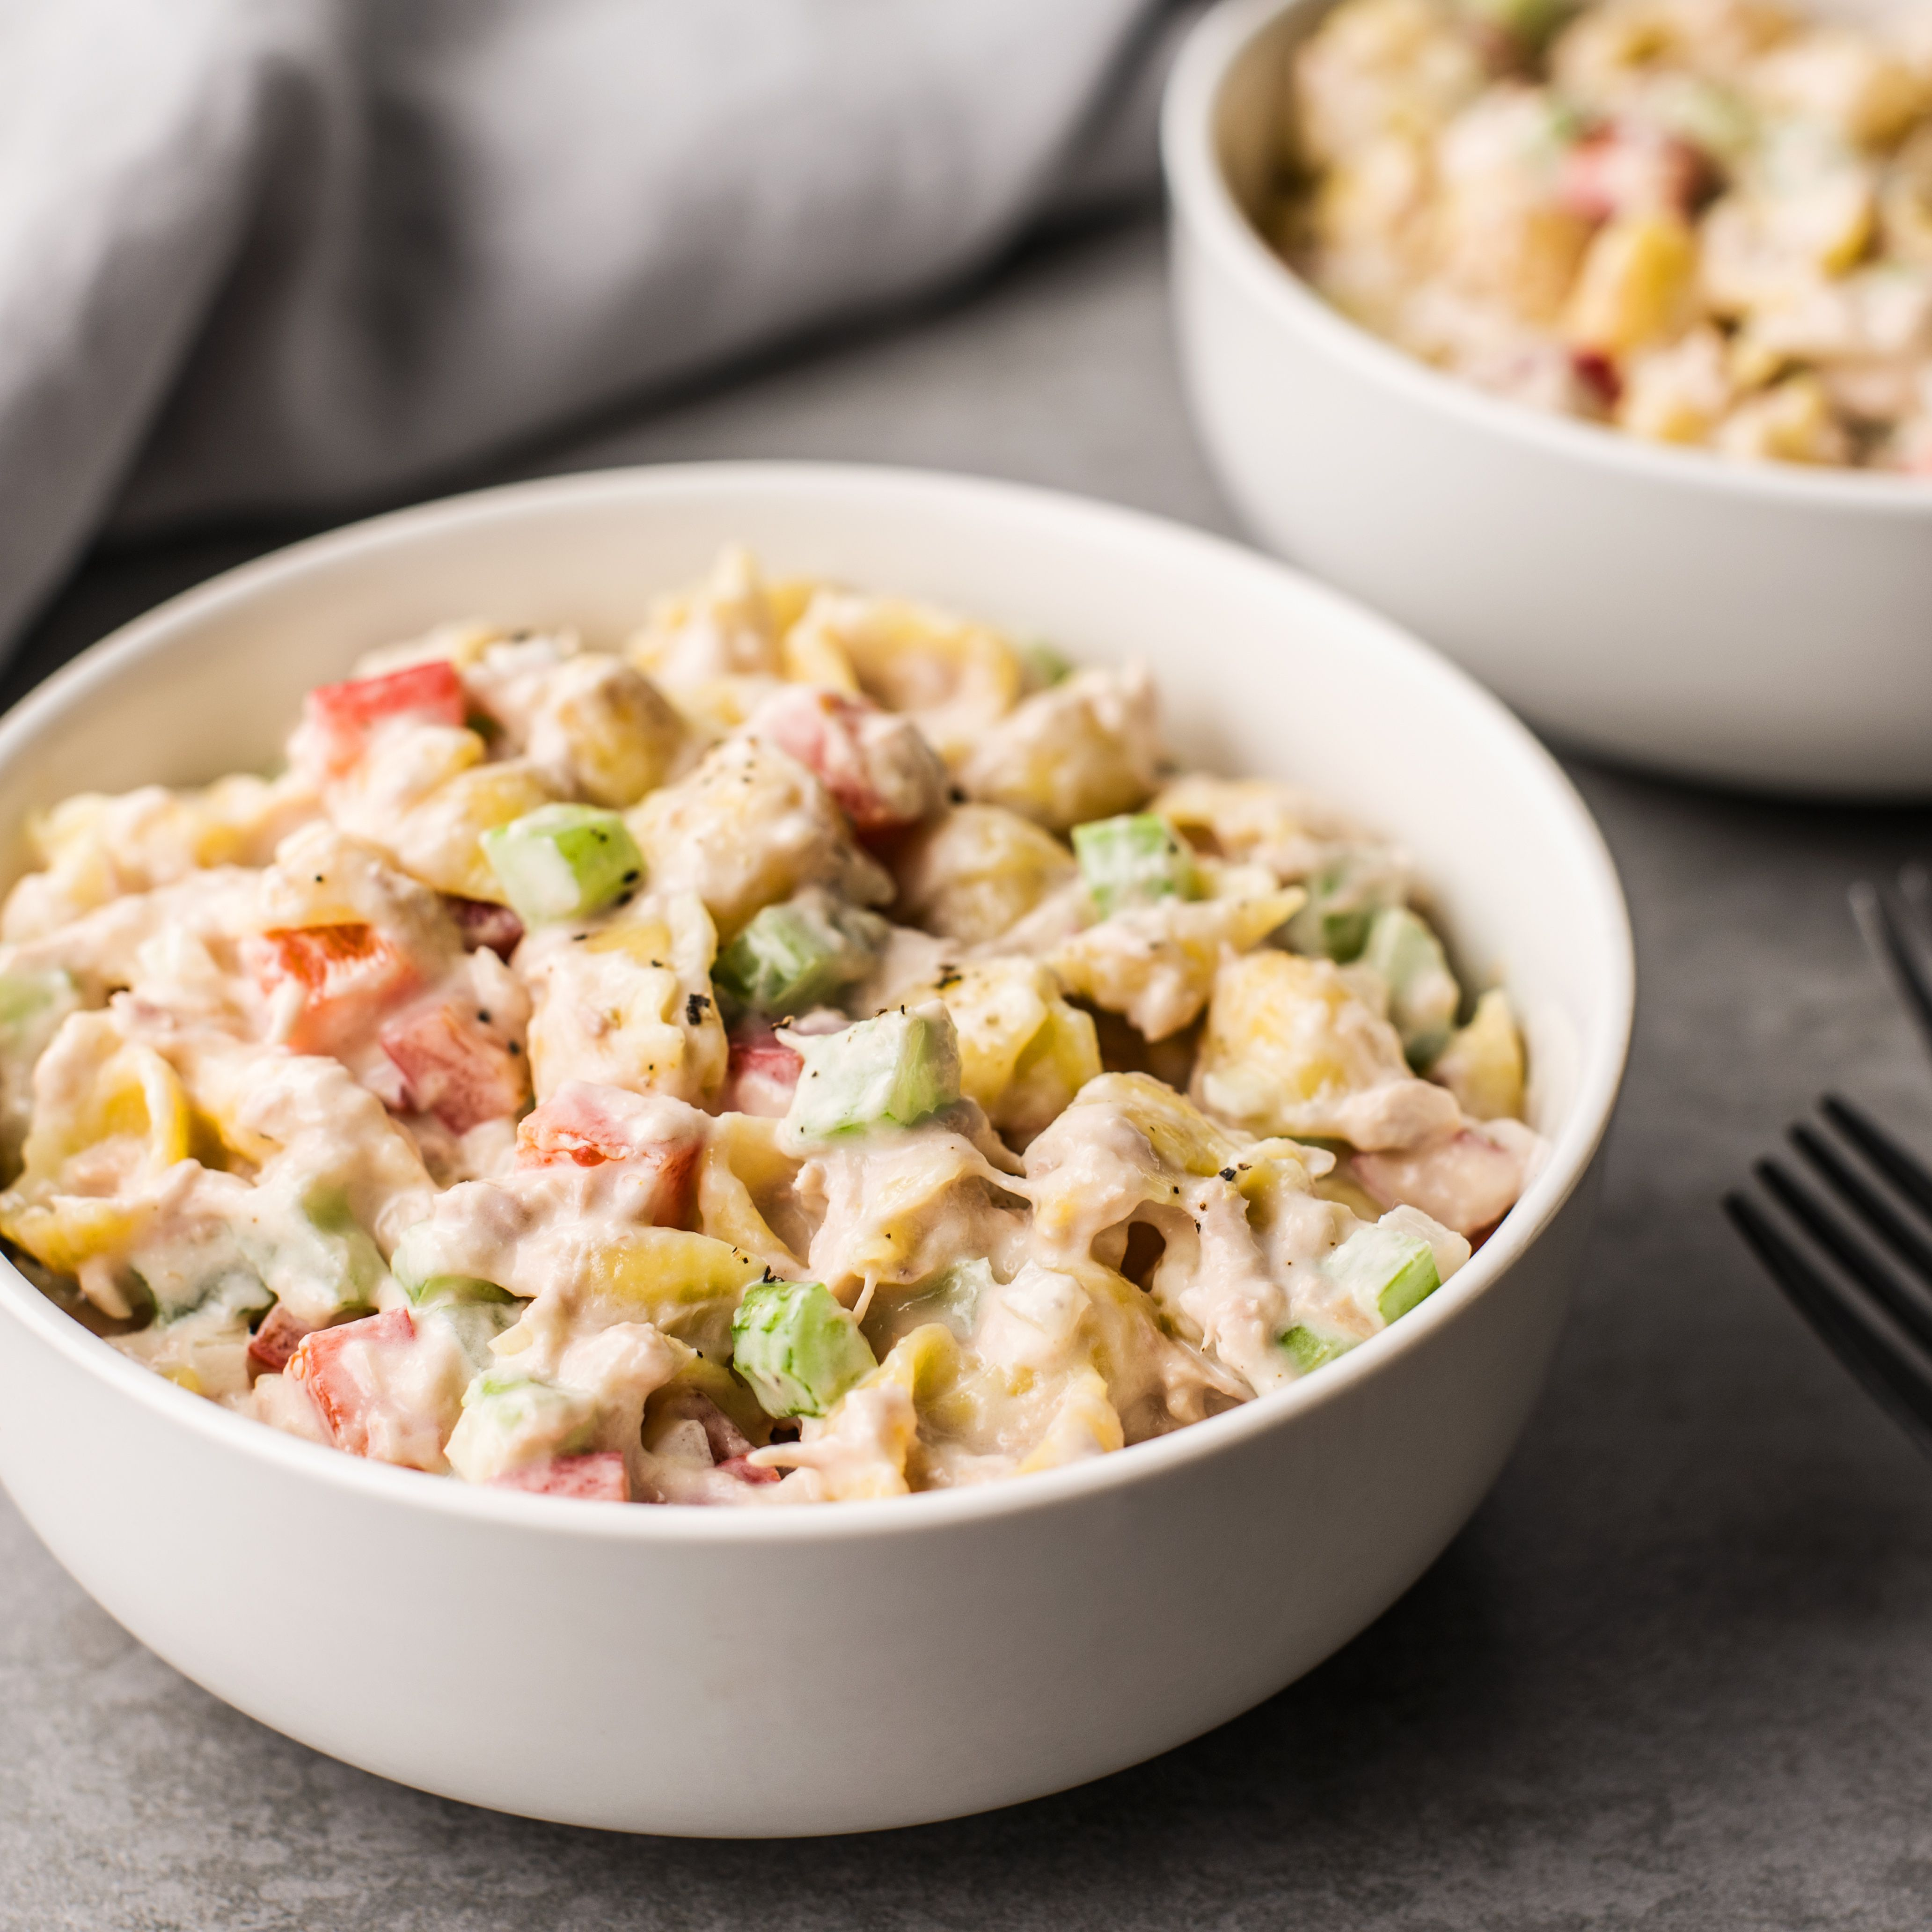 Simple Tuna Macaroni Salad Recipe